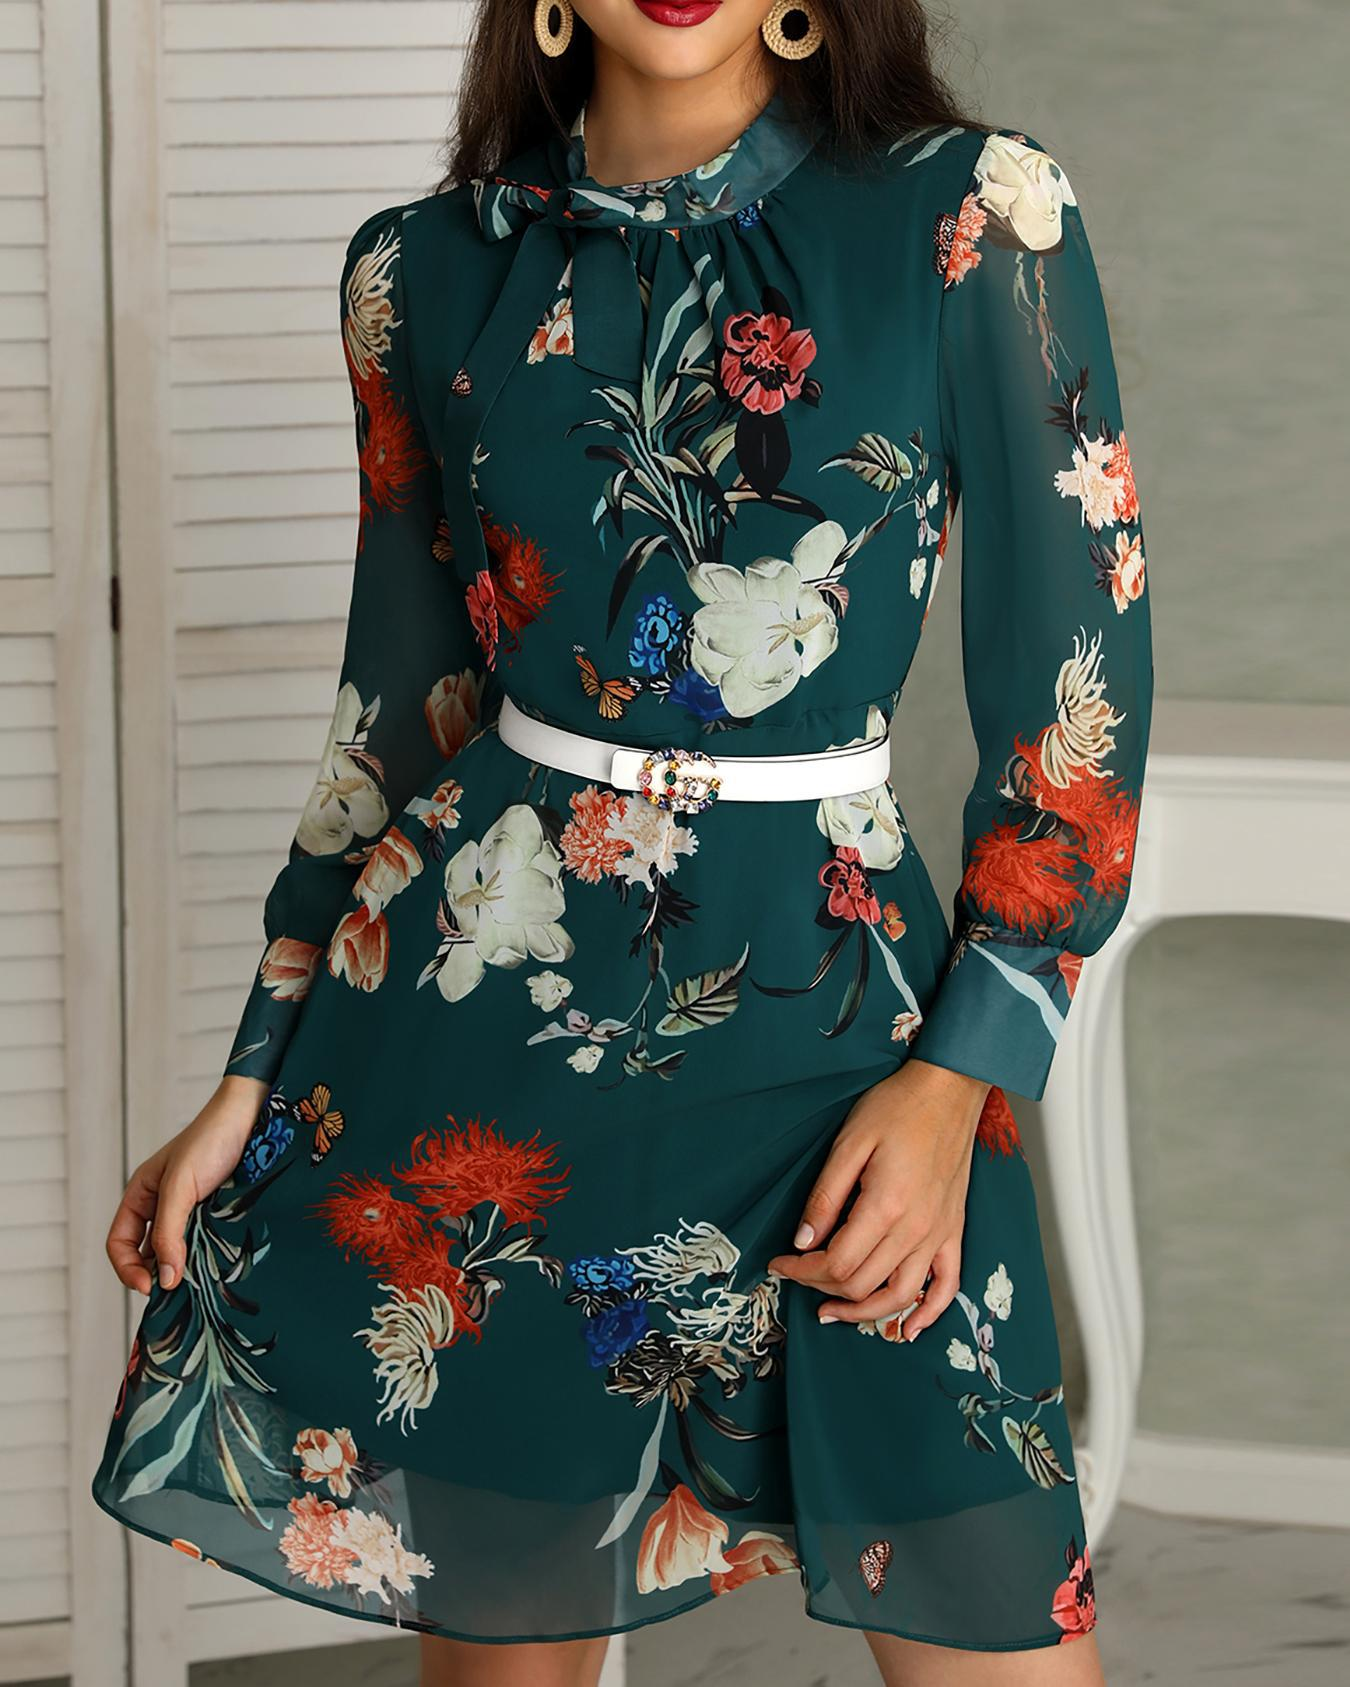 Floral Print Tie Neck Long Sleeve Casual Dress фото